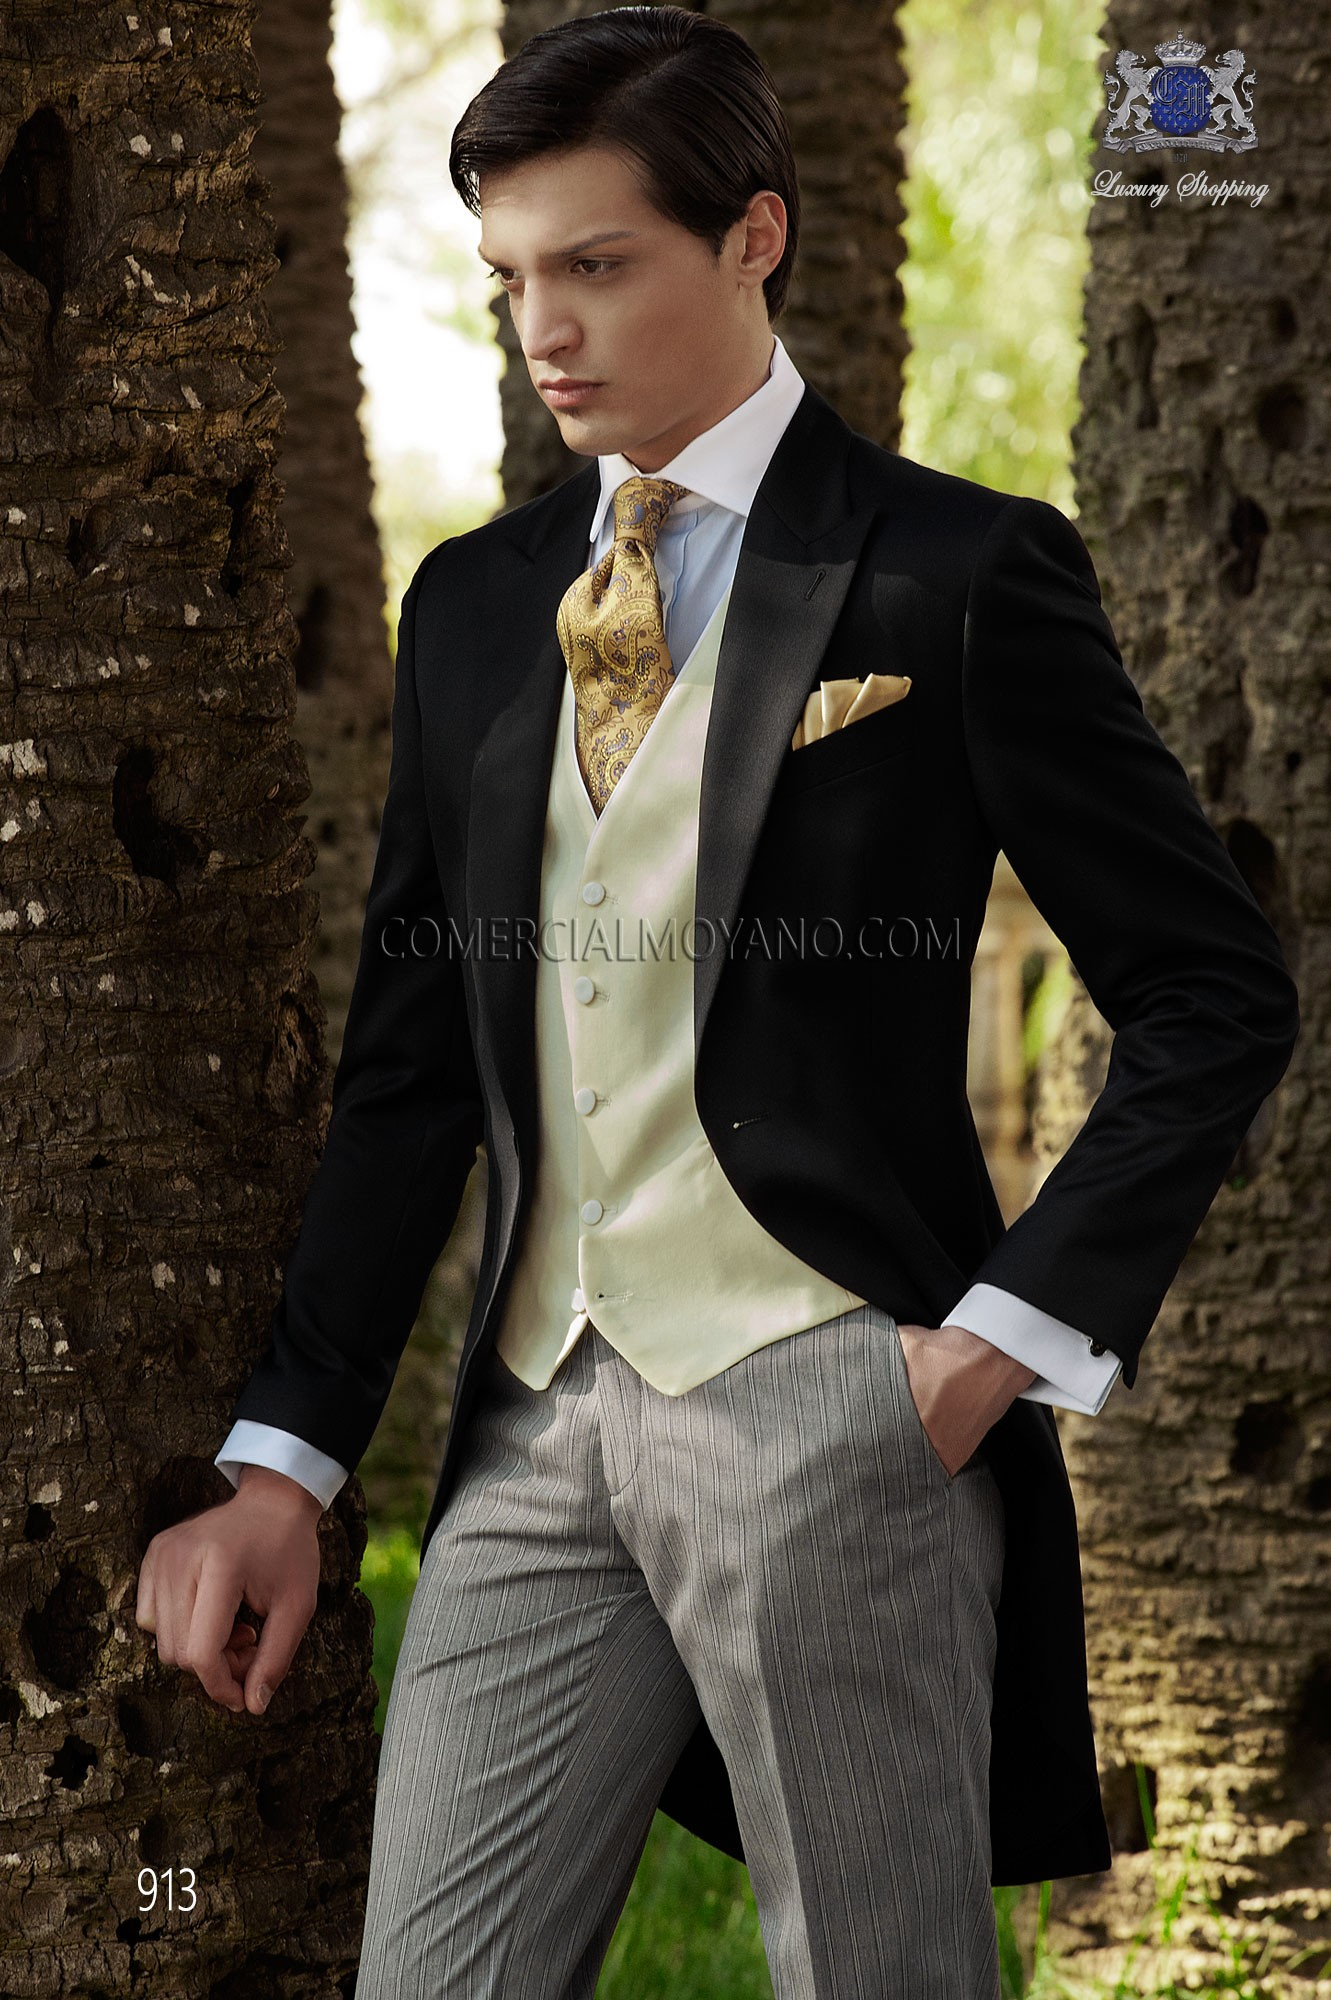 Italian bespoke black wedding morning suit 913 Ottavio Nuccio Gala.